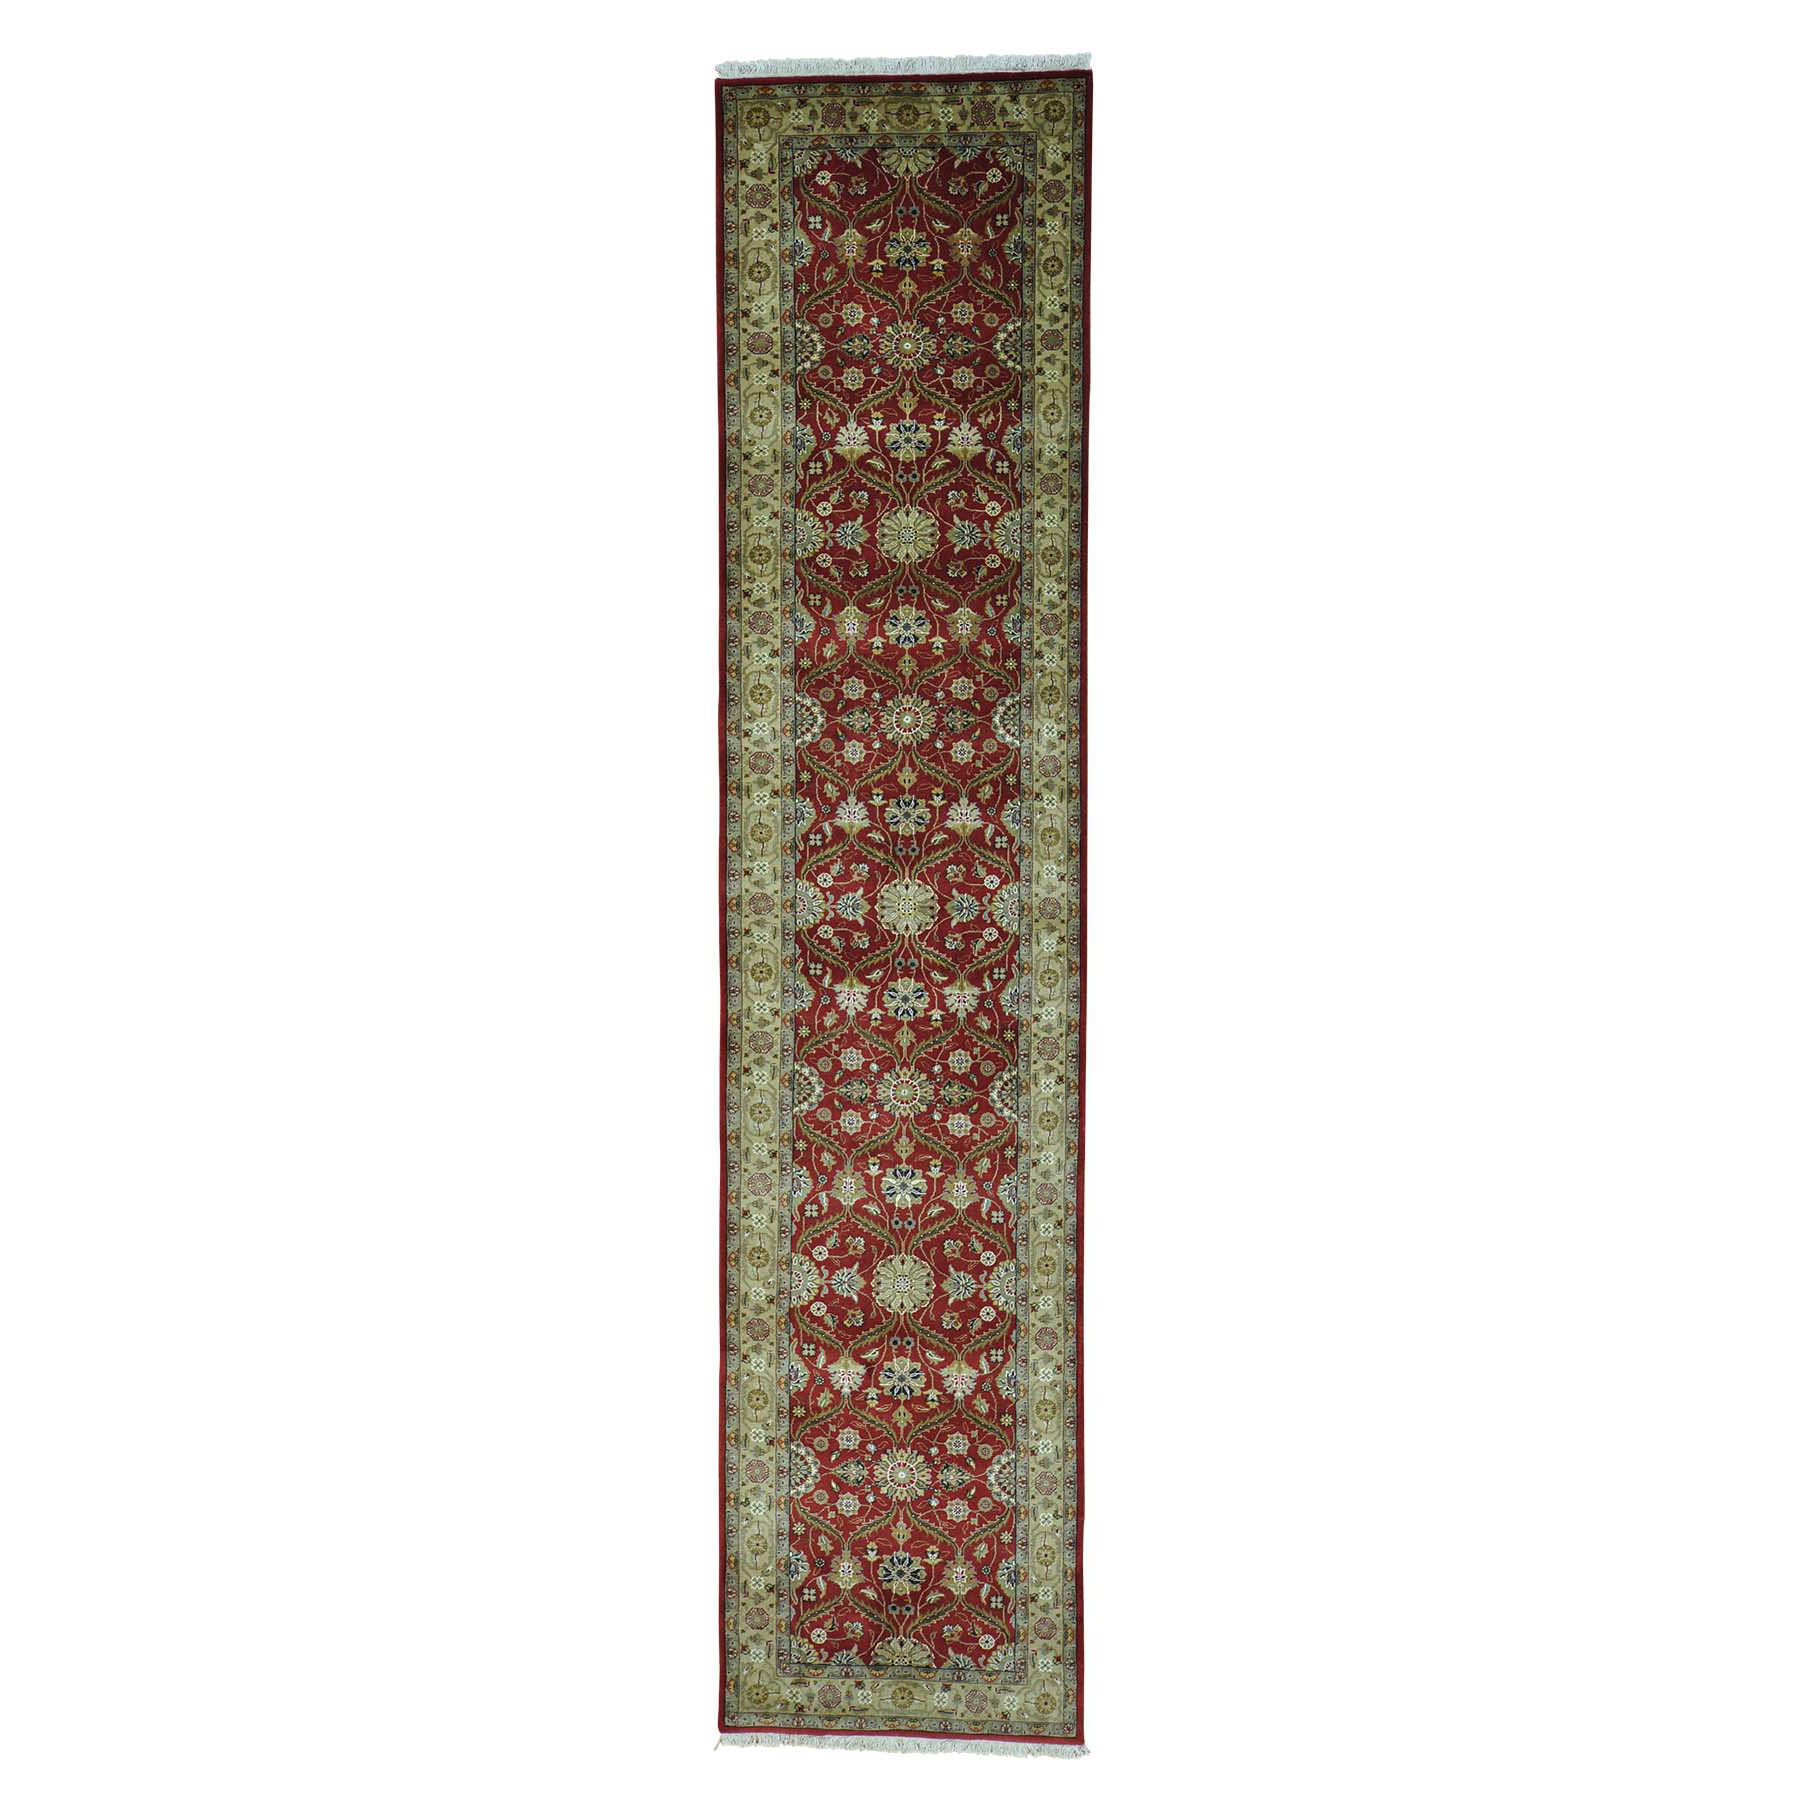 Pirniakan Collection Hand Knotted Red Rug No: 0156870